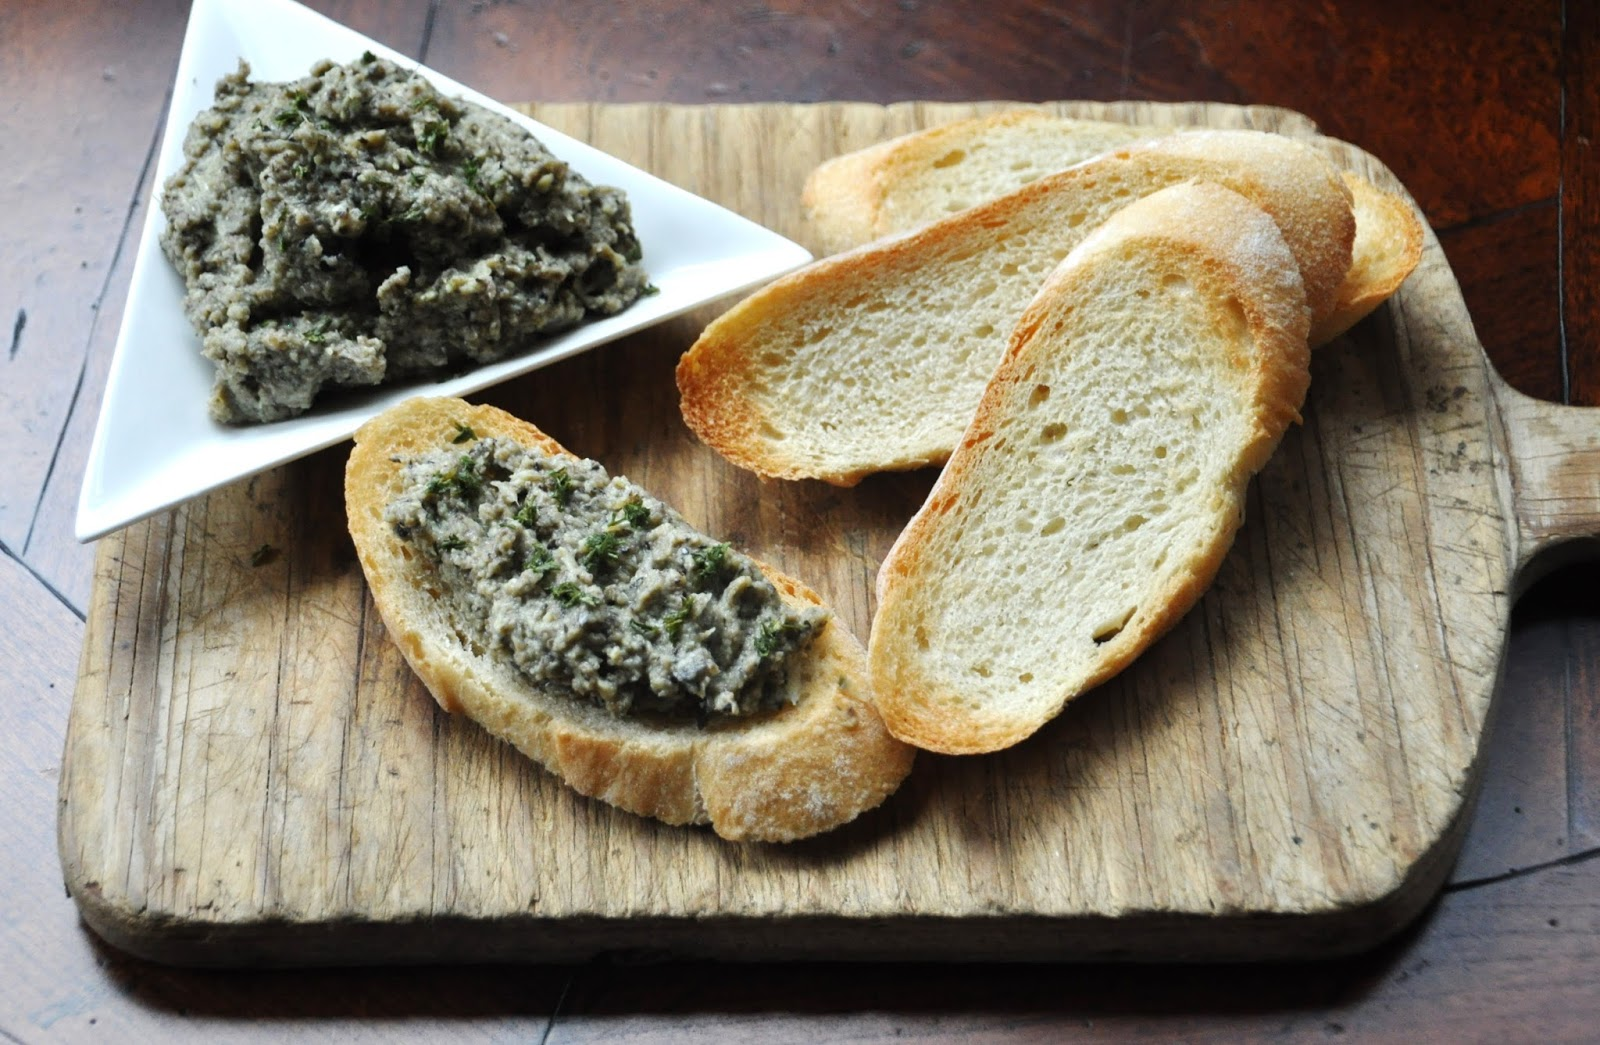 A LA GRAHAM: ARTICHOKE-OLIVE TAPENADE ON CROSTINI